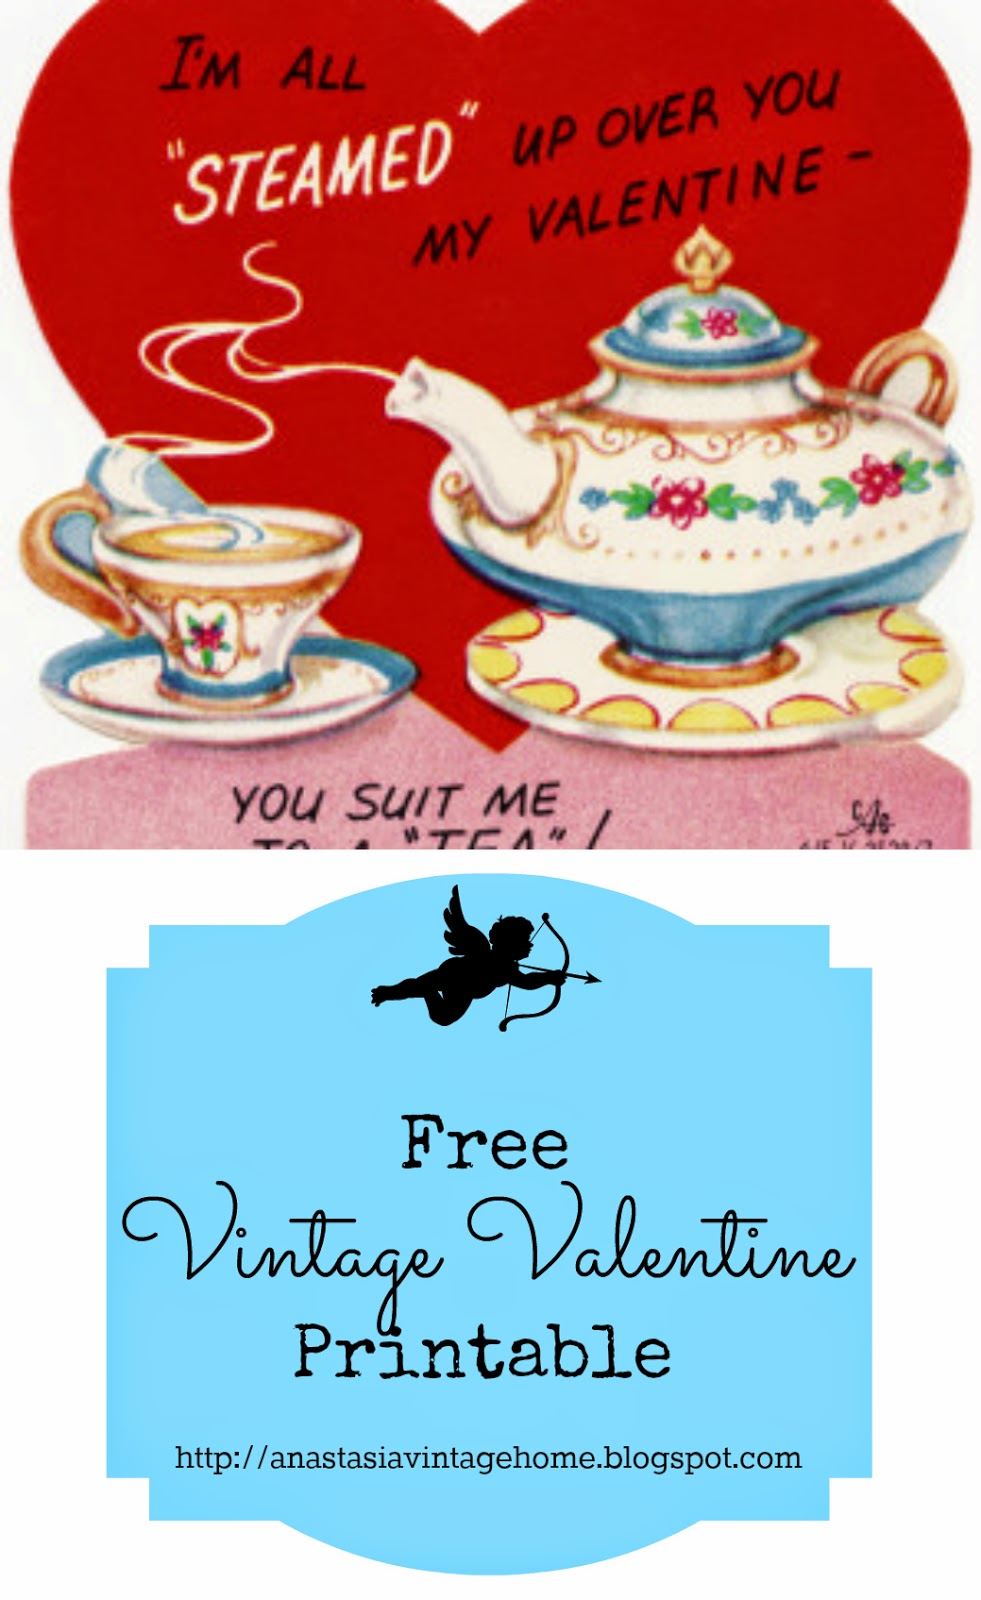 photograph relating to Free Printable Vintage Valentine Cards called Typical Valentine Printable Anastasia Basic